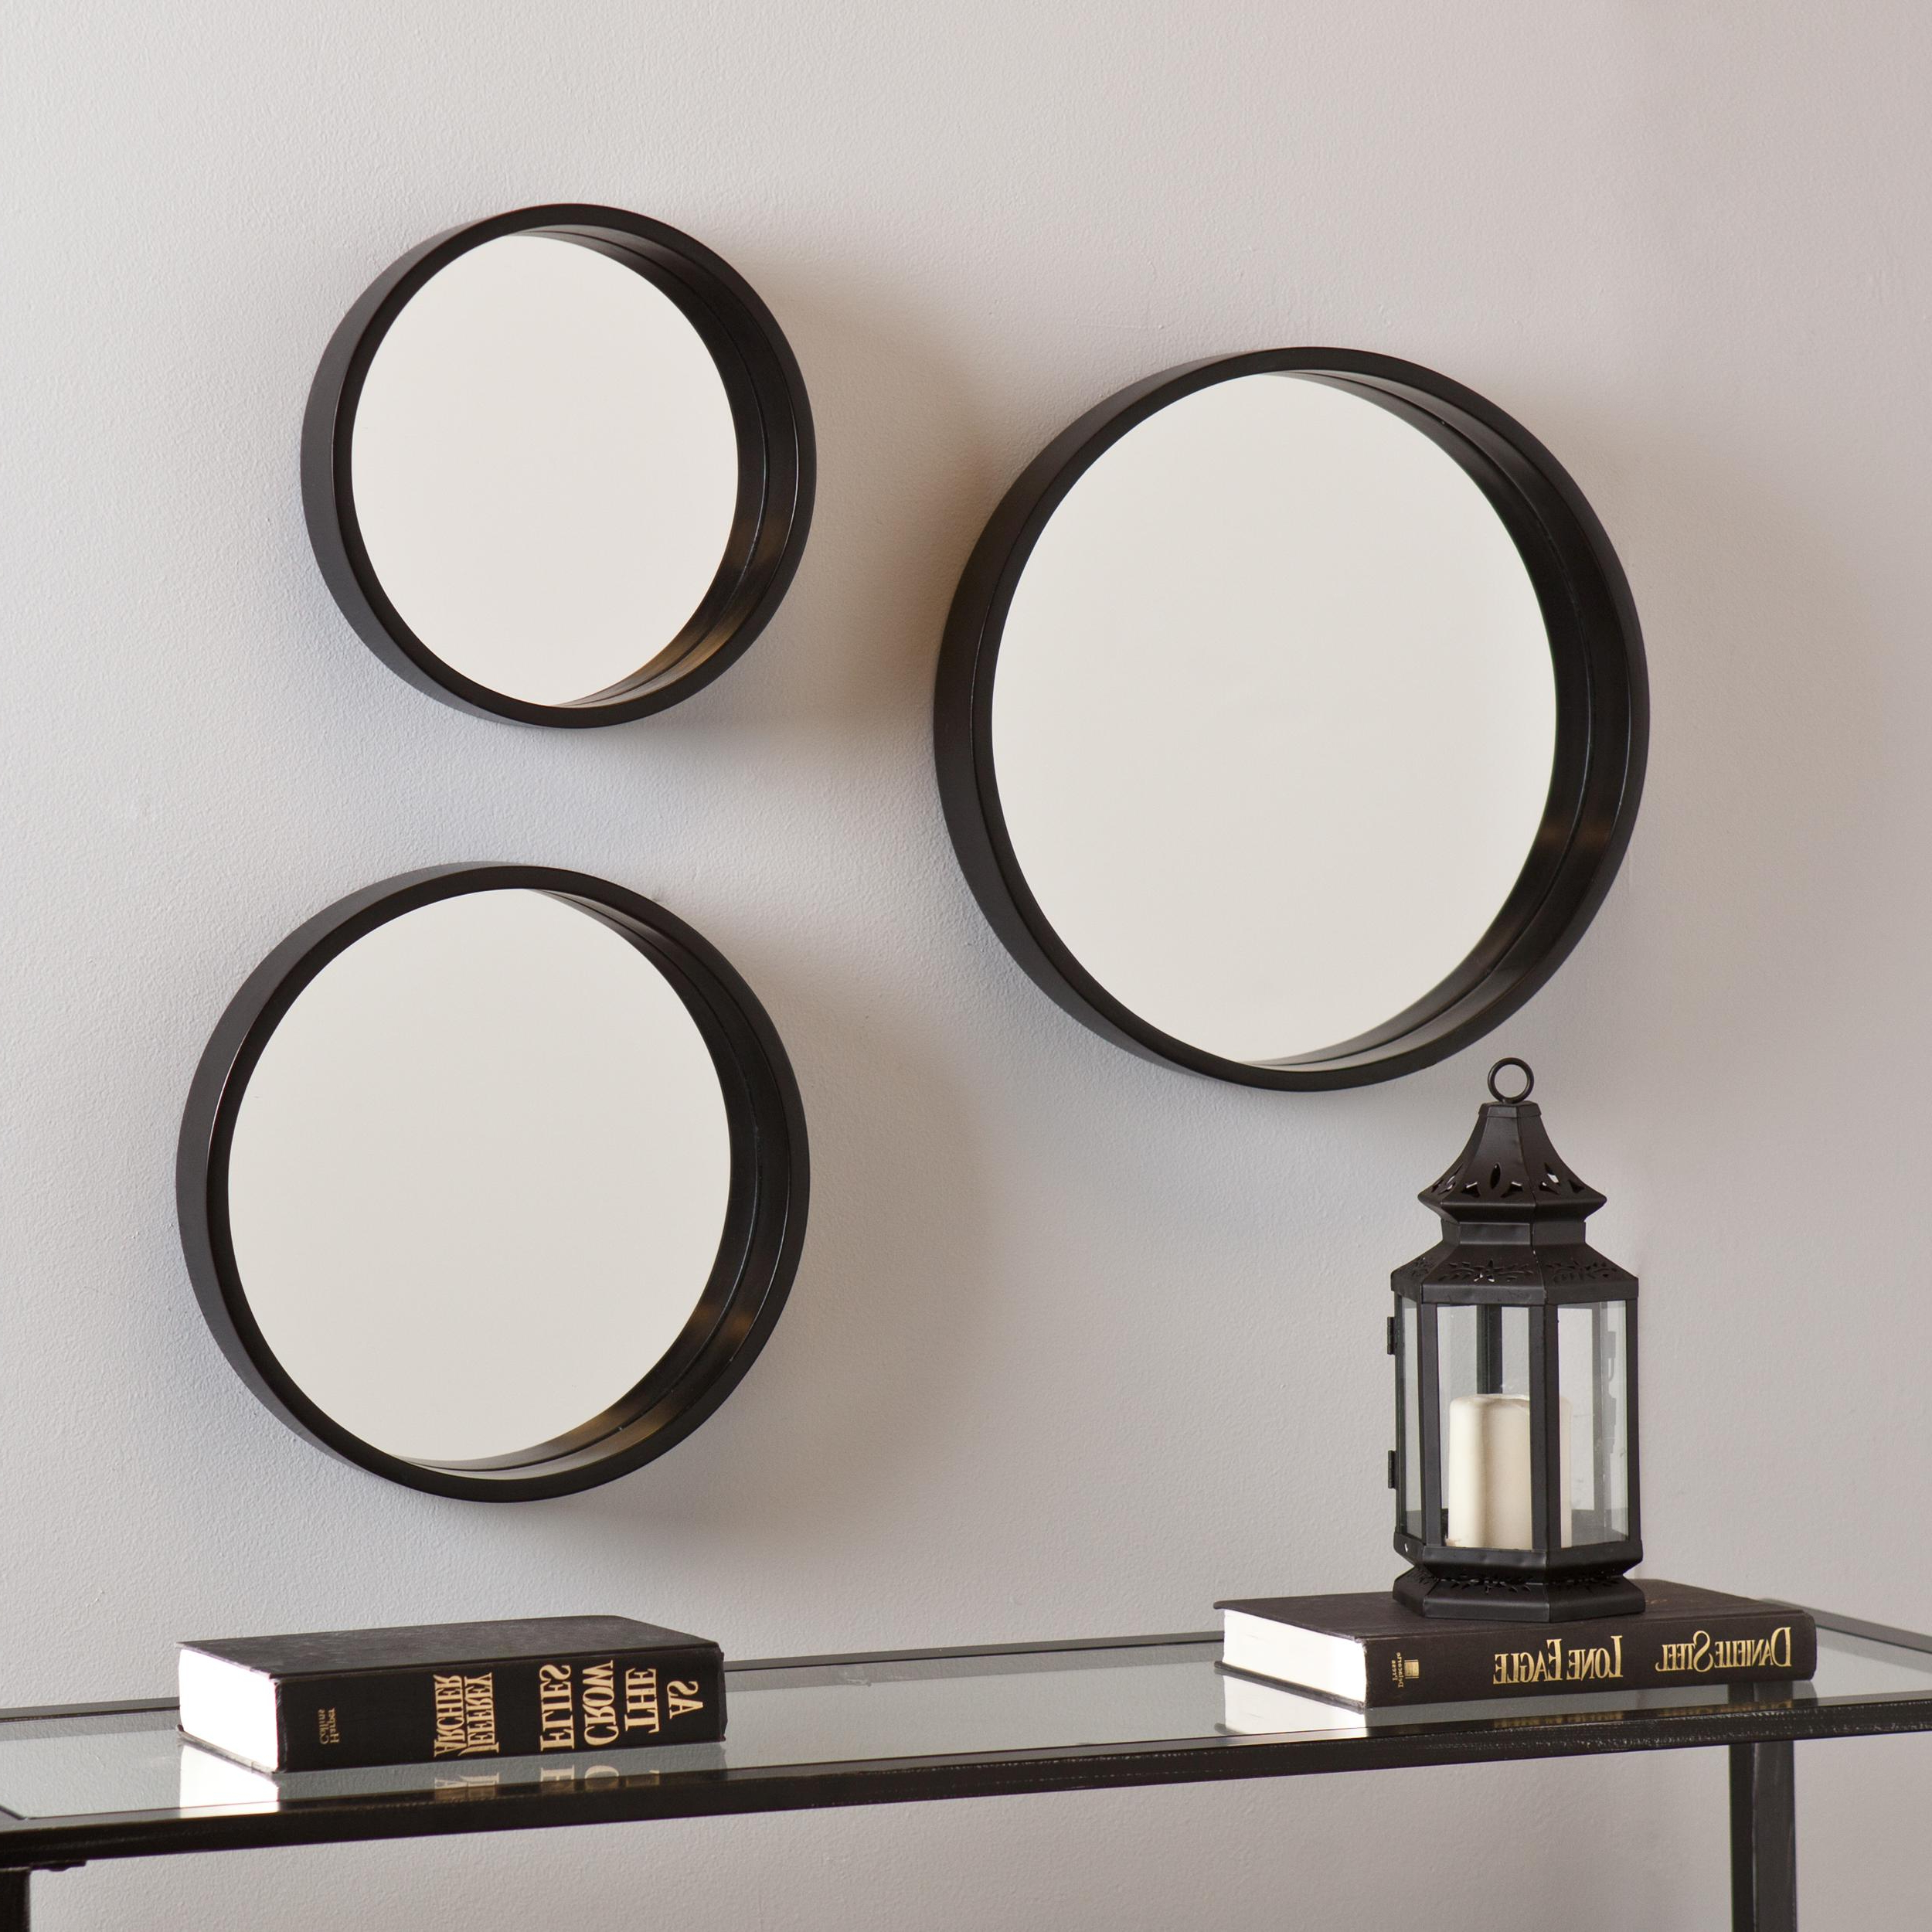 Decorative Wall Mirror Sets Within Most Recent Joyous Wall Mirror Sets In Conjunction With Antique Decorative Panel (Gallery 10 of 20)